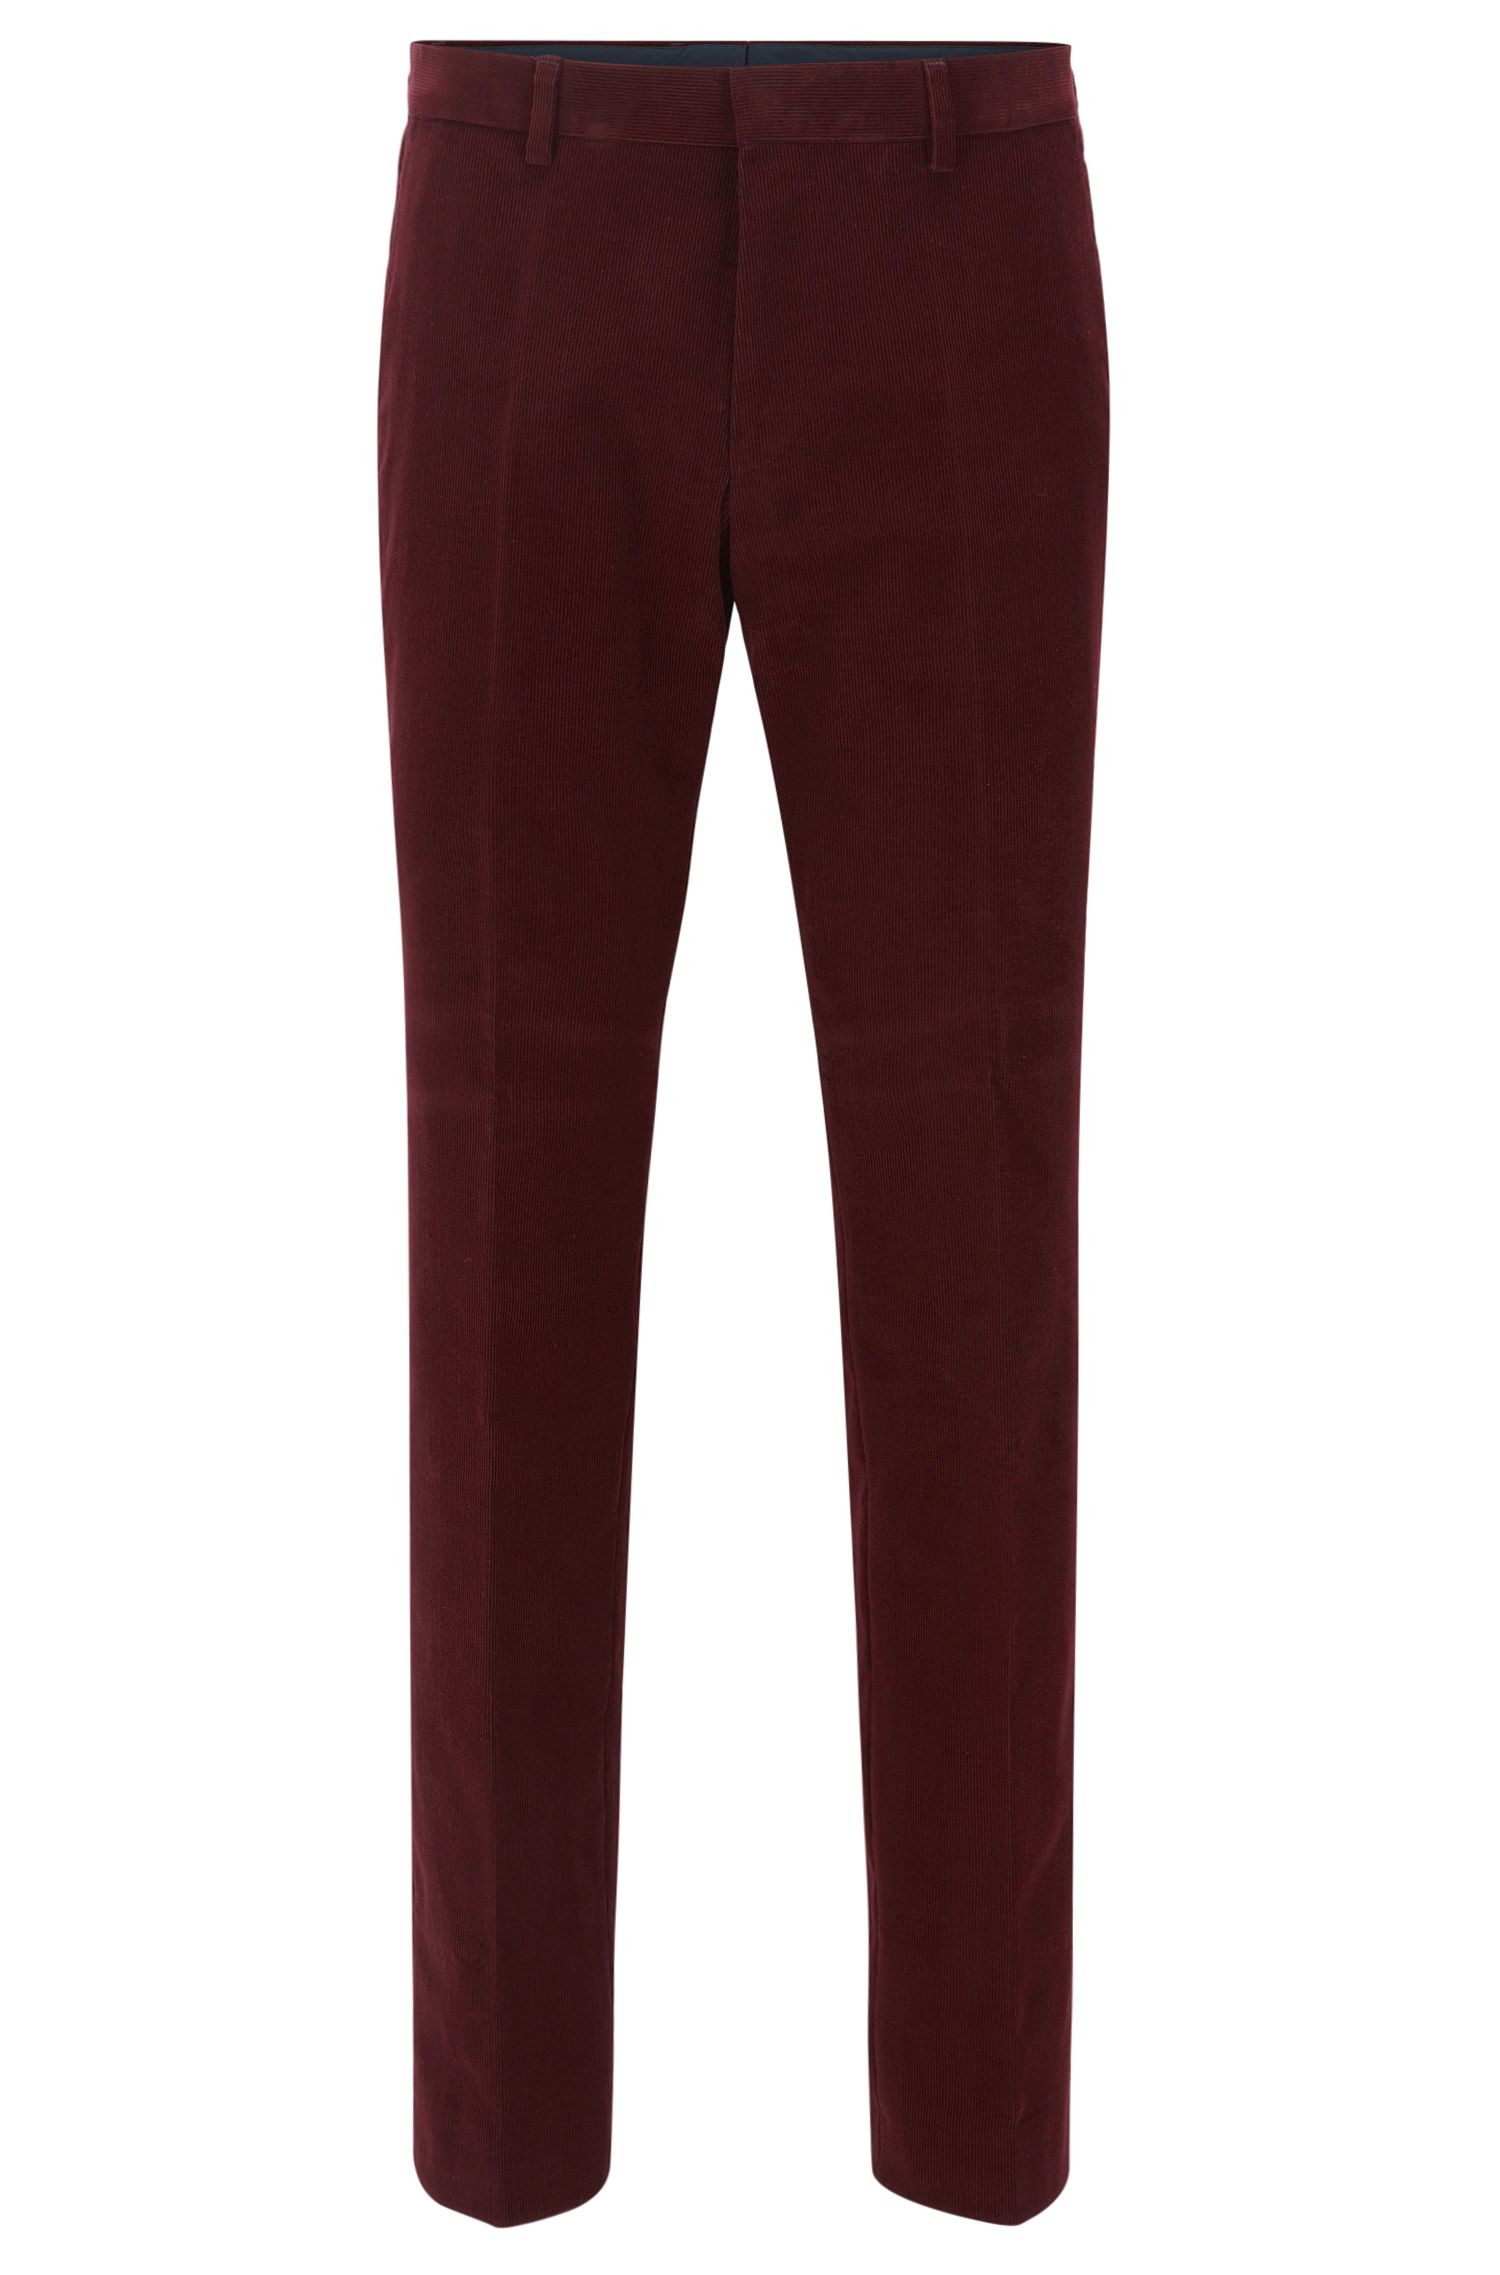 Corduroy Dress Pant, Slim Fit | Genesis